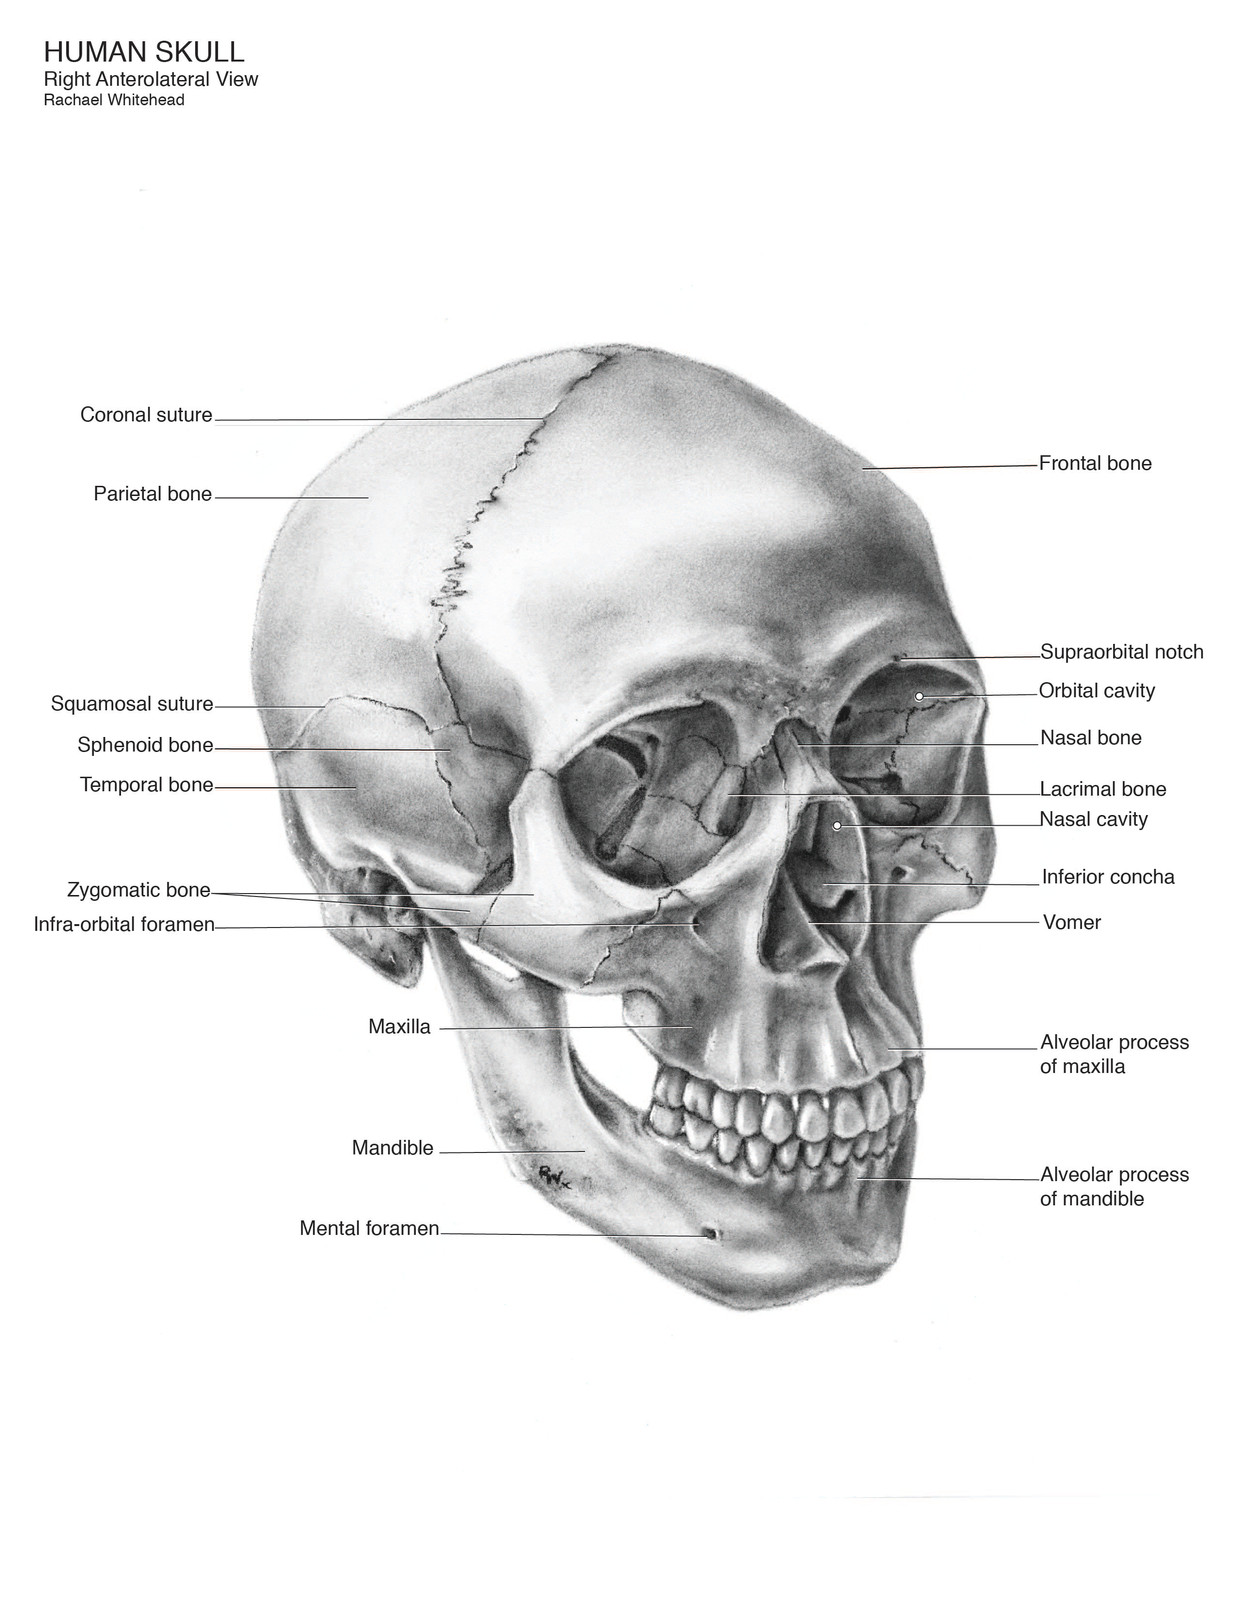 Right Antererolateral View Of A Human Skull